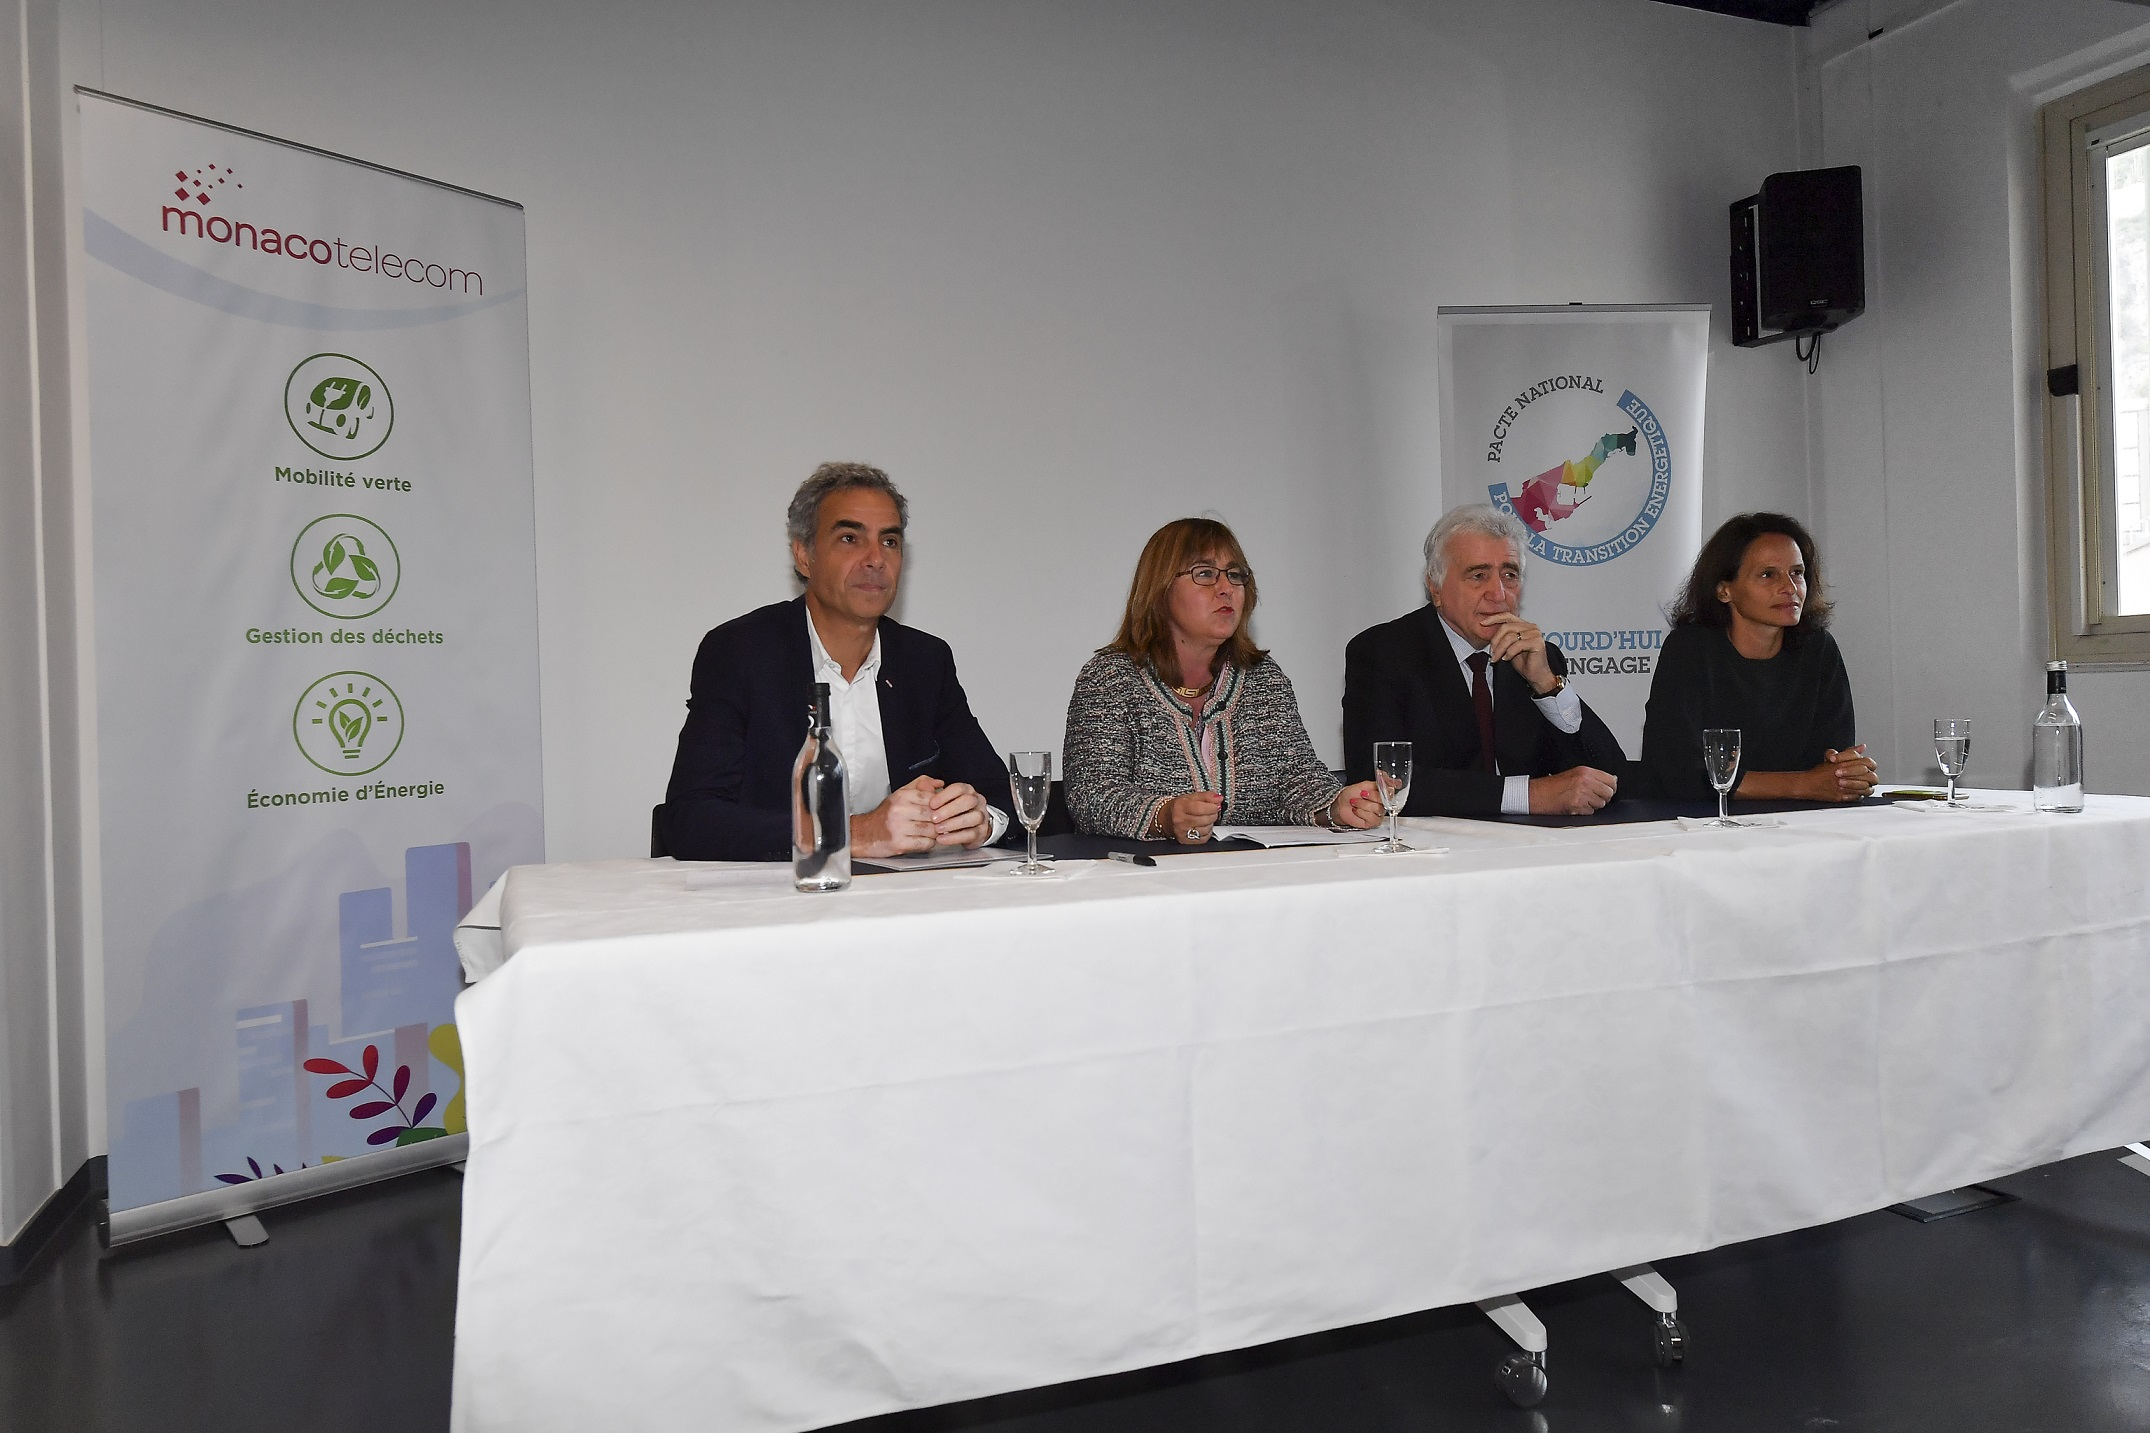 Signature Pacte Nation Transition Energétique Monaco Telecom